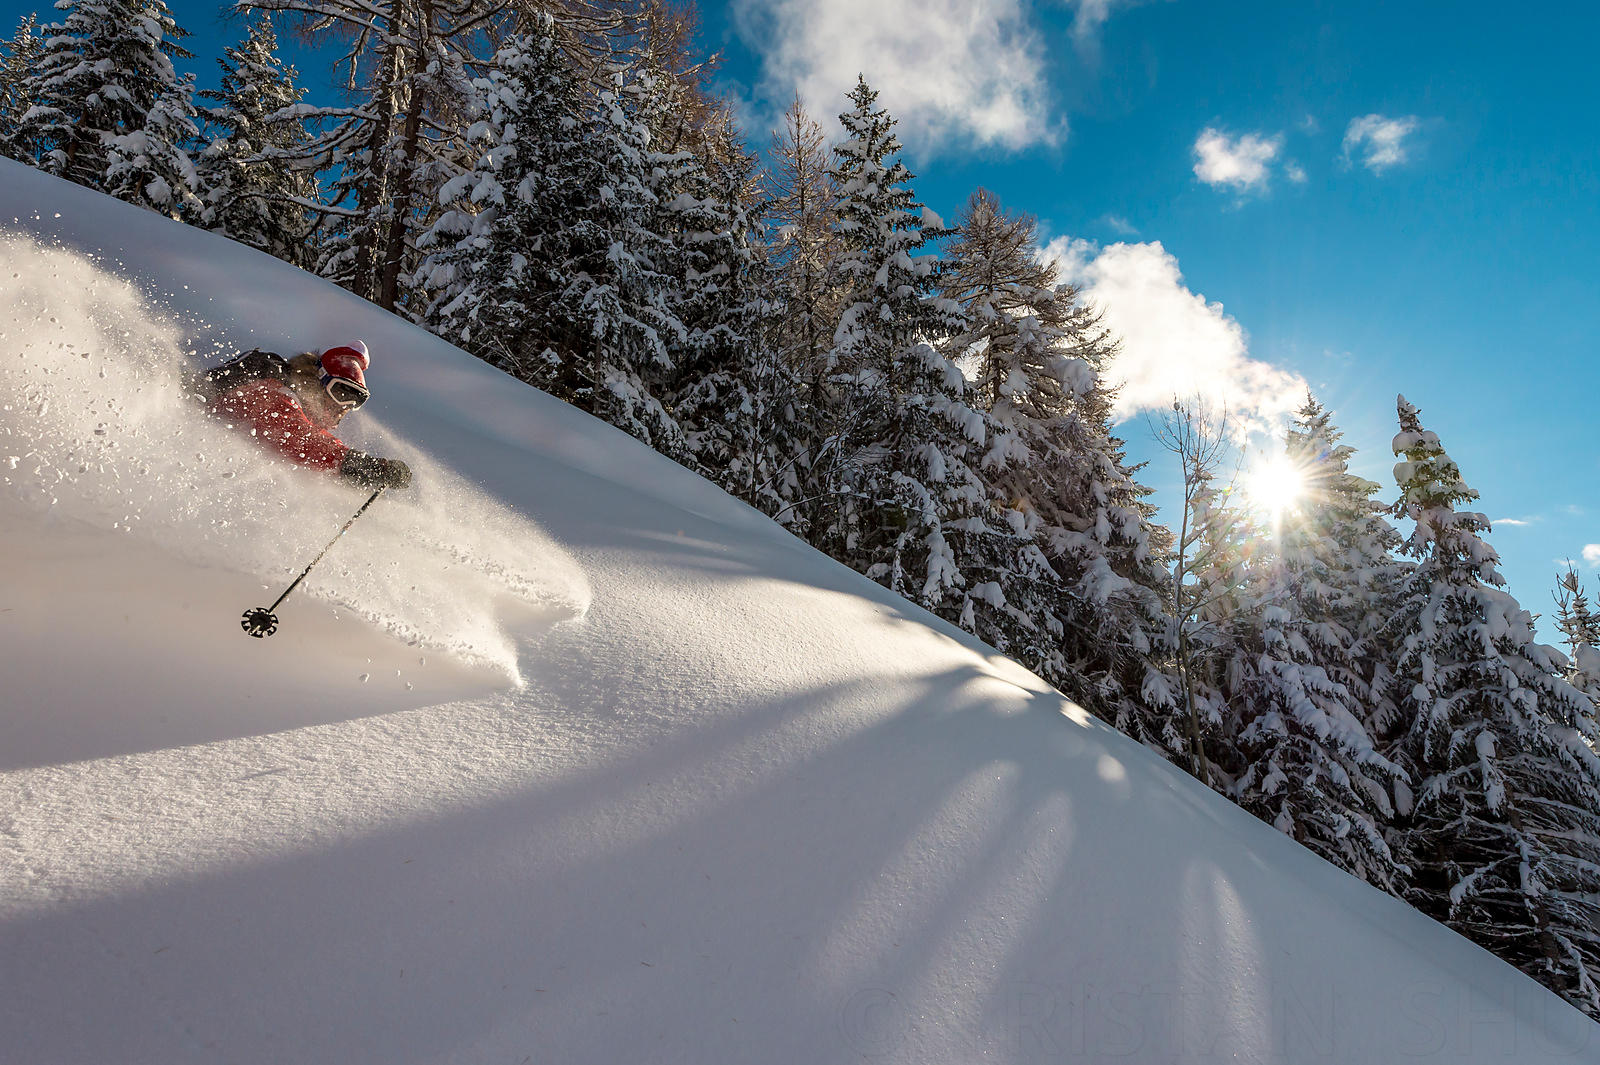 Riding Pow with Adrien Coirier